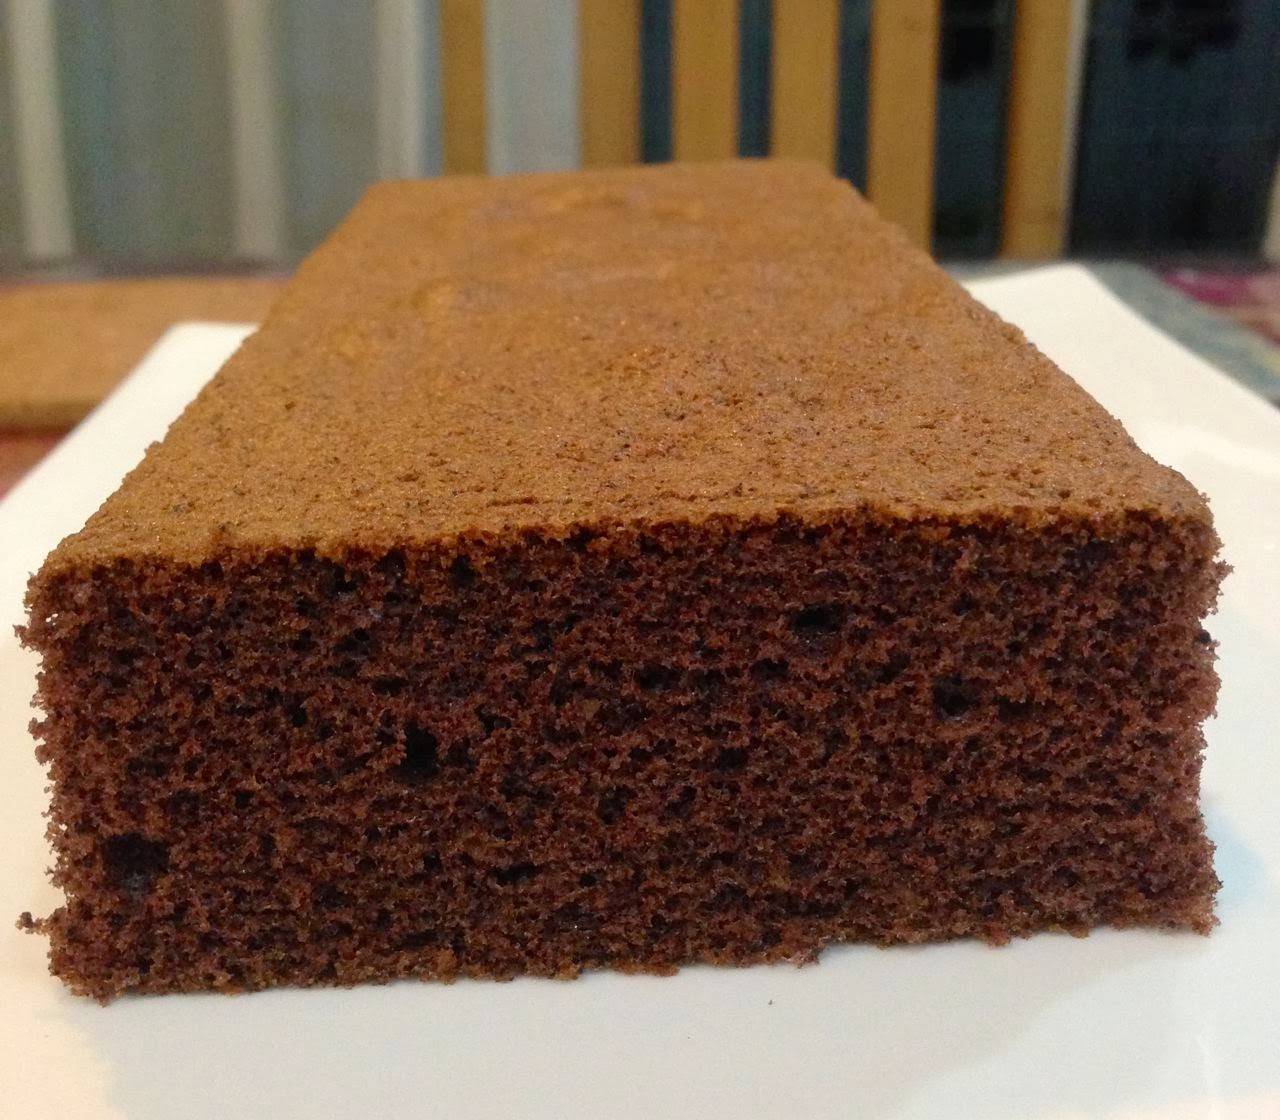 Baking Diary: Chocolate Sponge Cake